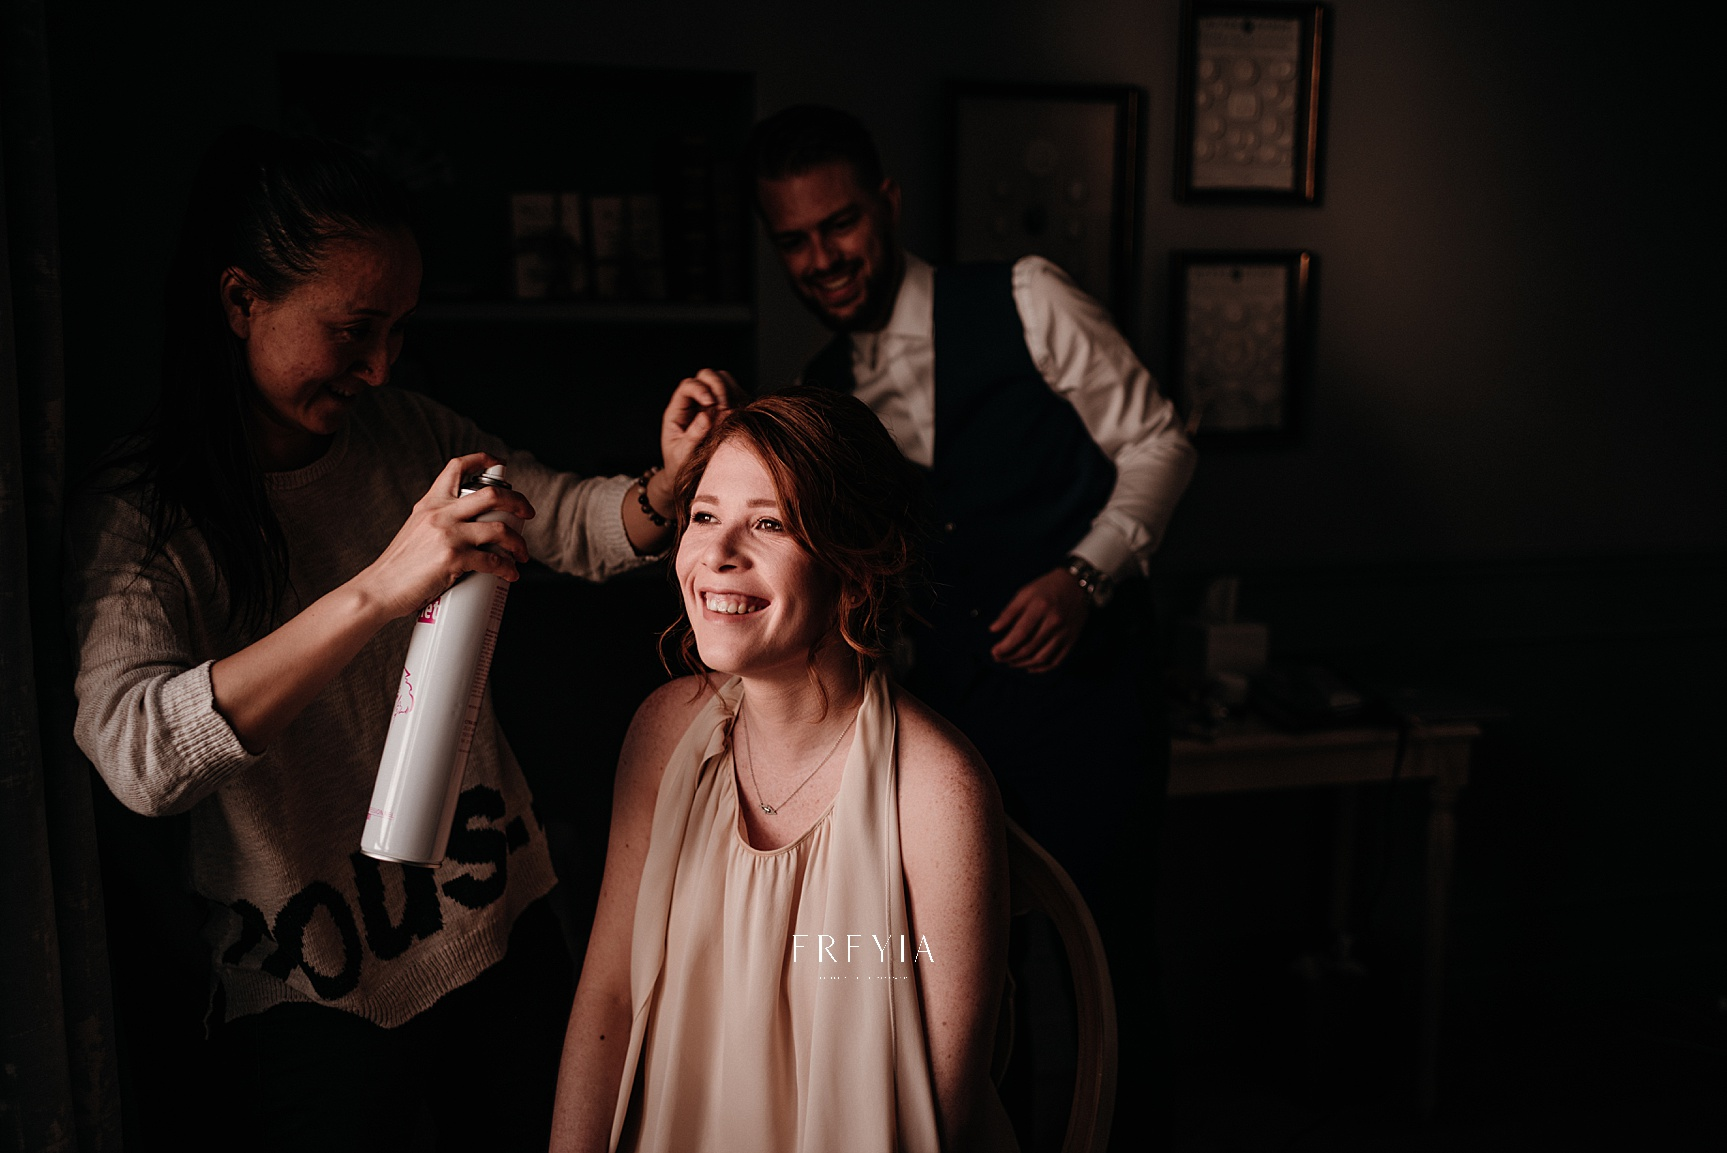 P + F |  mariage reportage alternatif moody intime vintage naturel boho boheme |  PHOTOGRAPHE mariage PARIS france destination  | FREYIA photography_-61.jpg